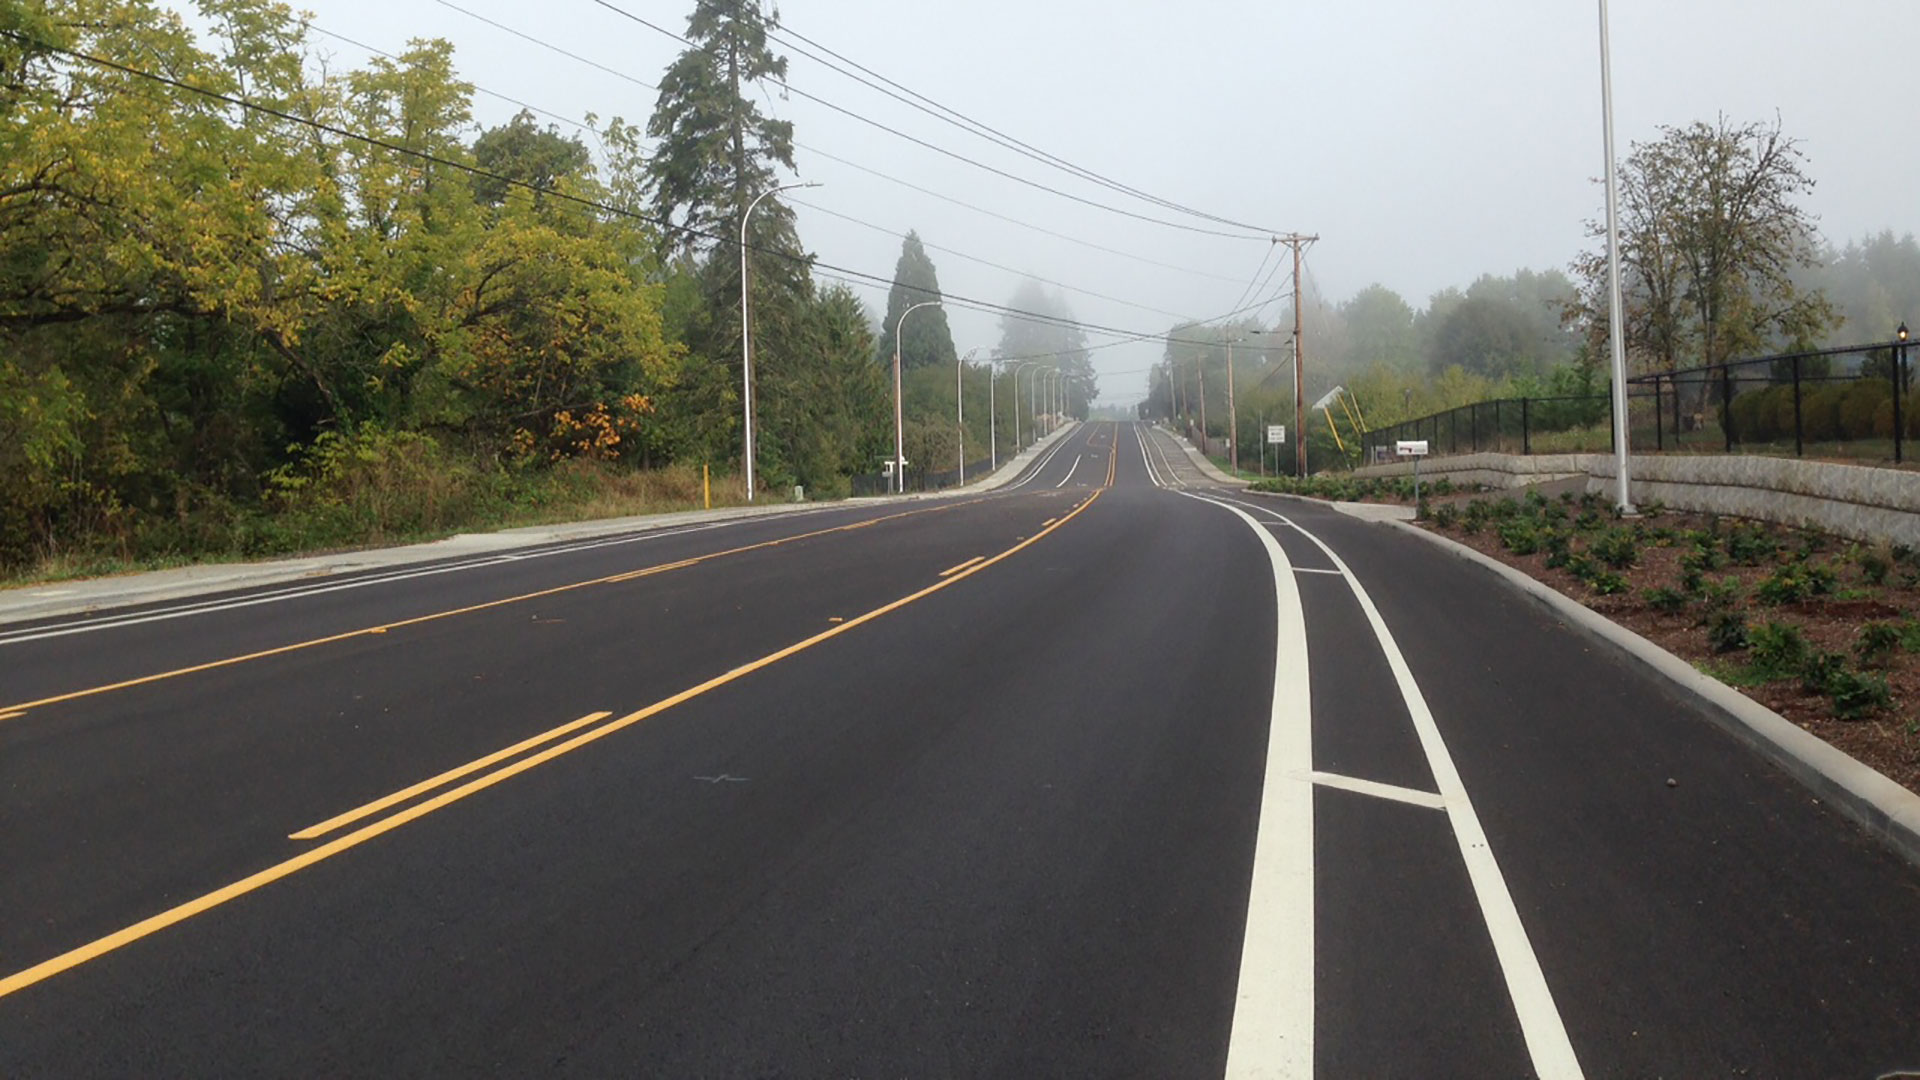 Boones Ferry Road - Day to Norwood complete street